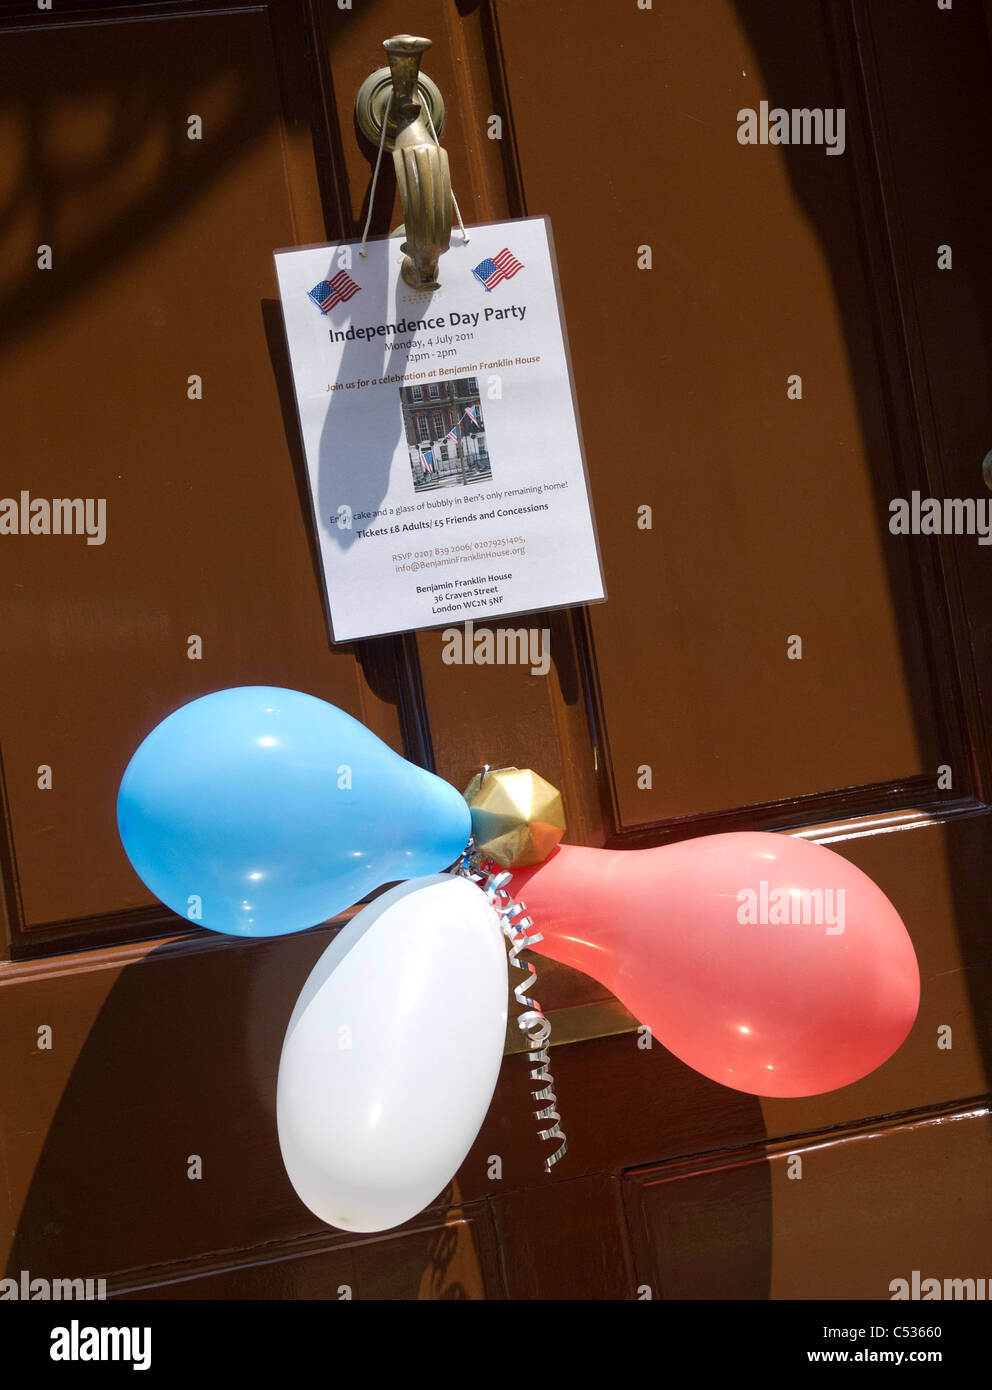 Balloons and Invitation to Independence day party at Benjamin Franklin House in London - Stock Image